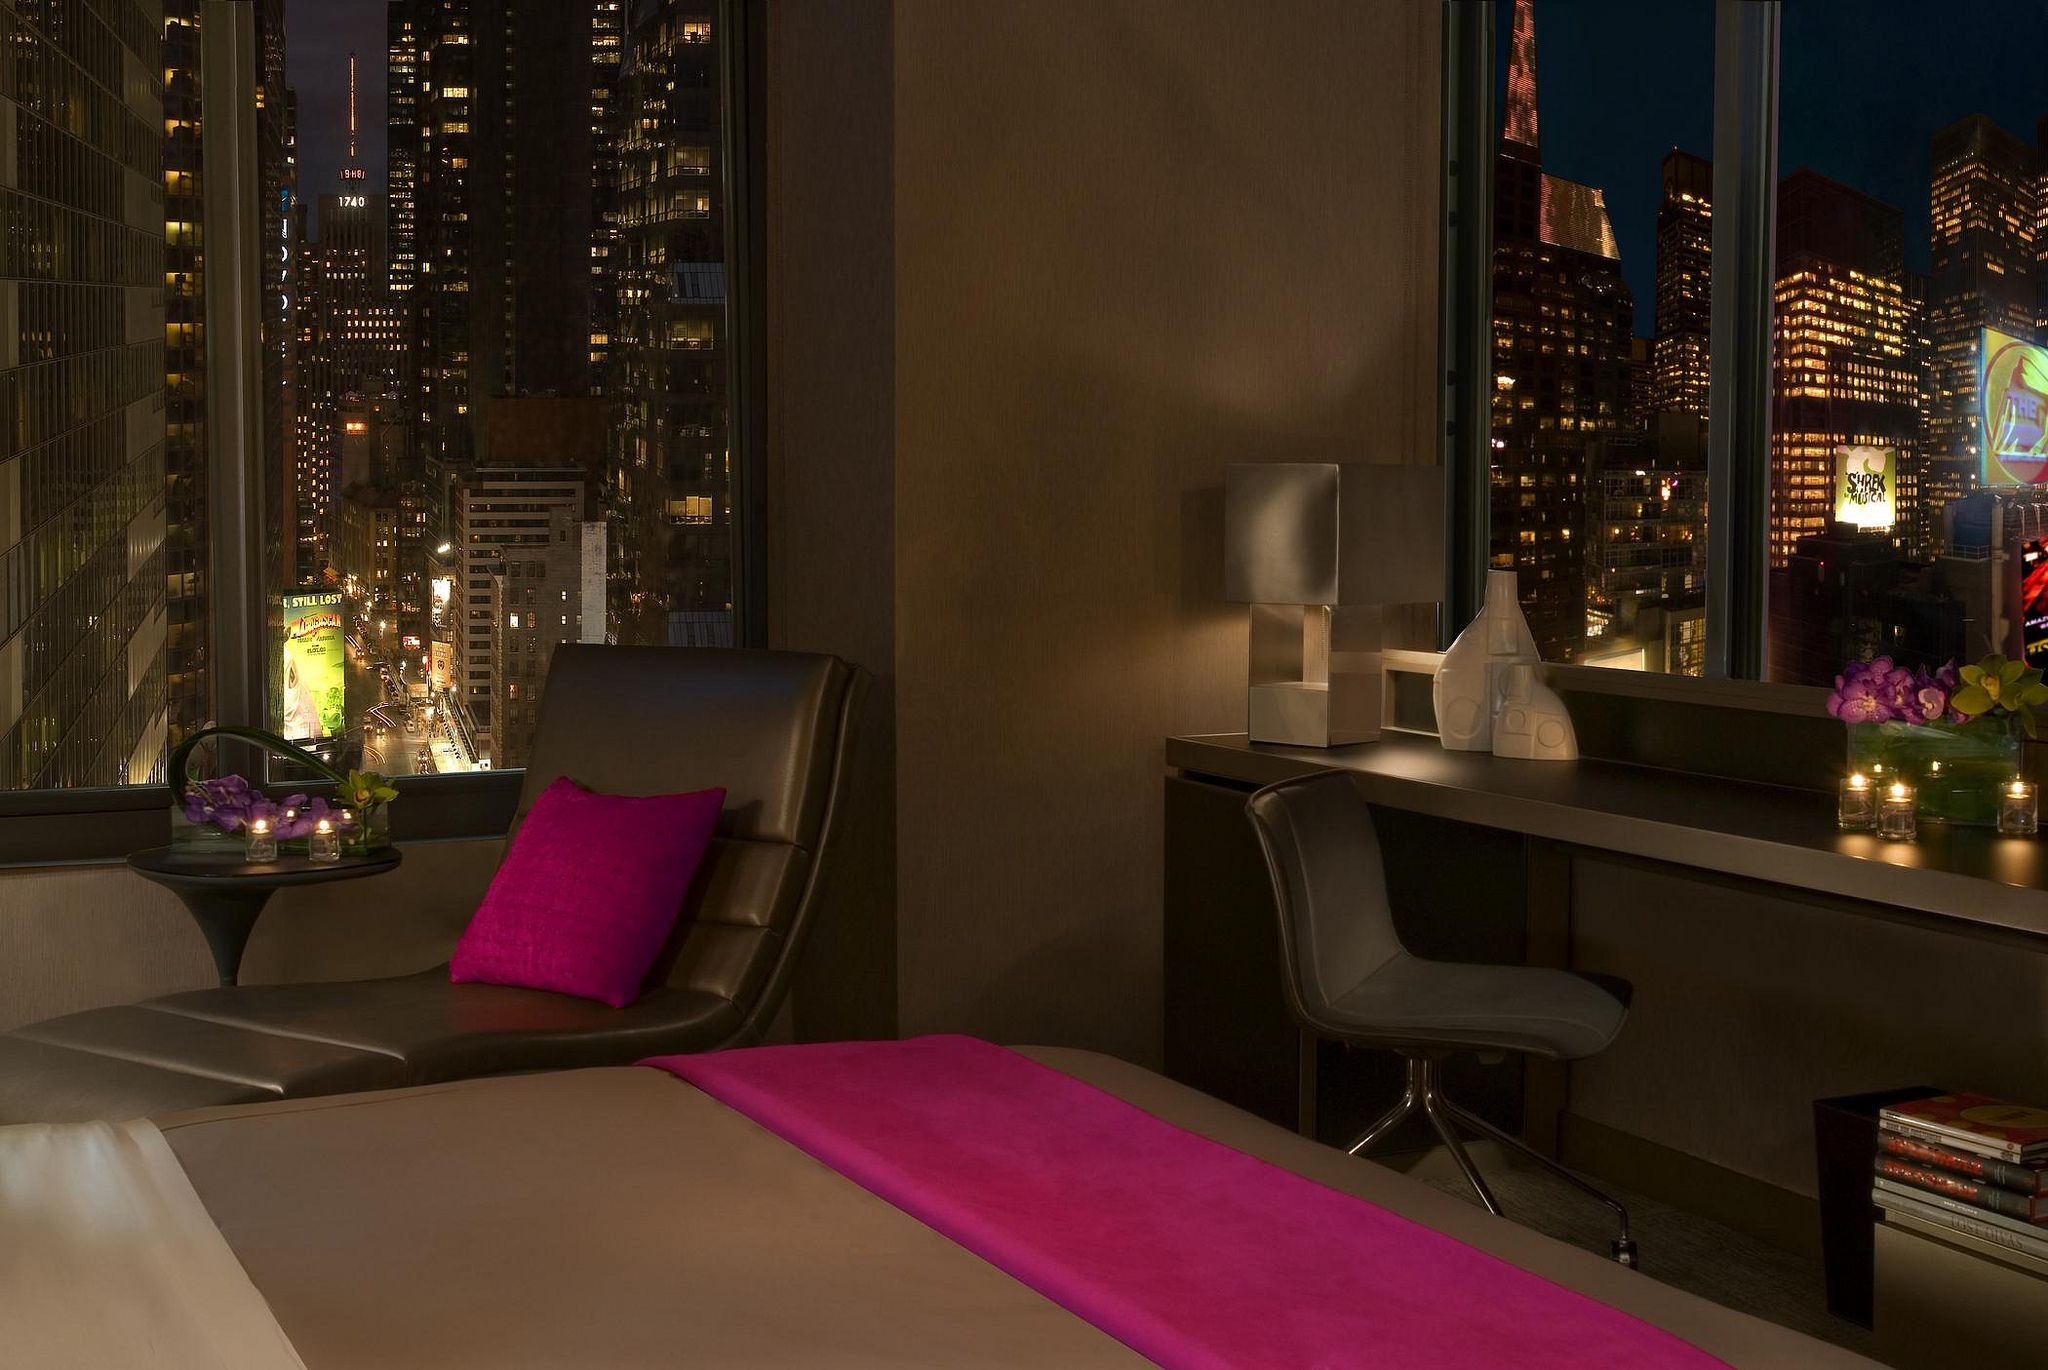 W New York Times Square Cool Corner Room With City View Times Square New York Times Square Hotels New York Pictures